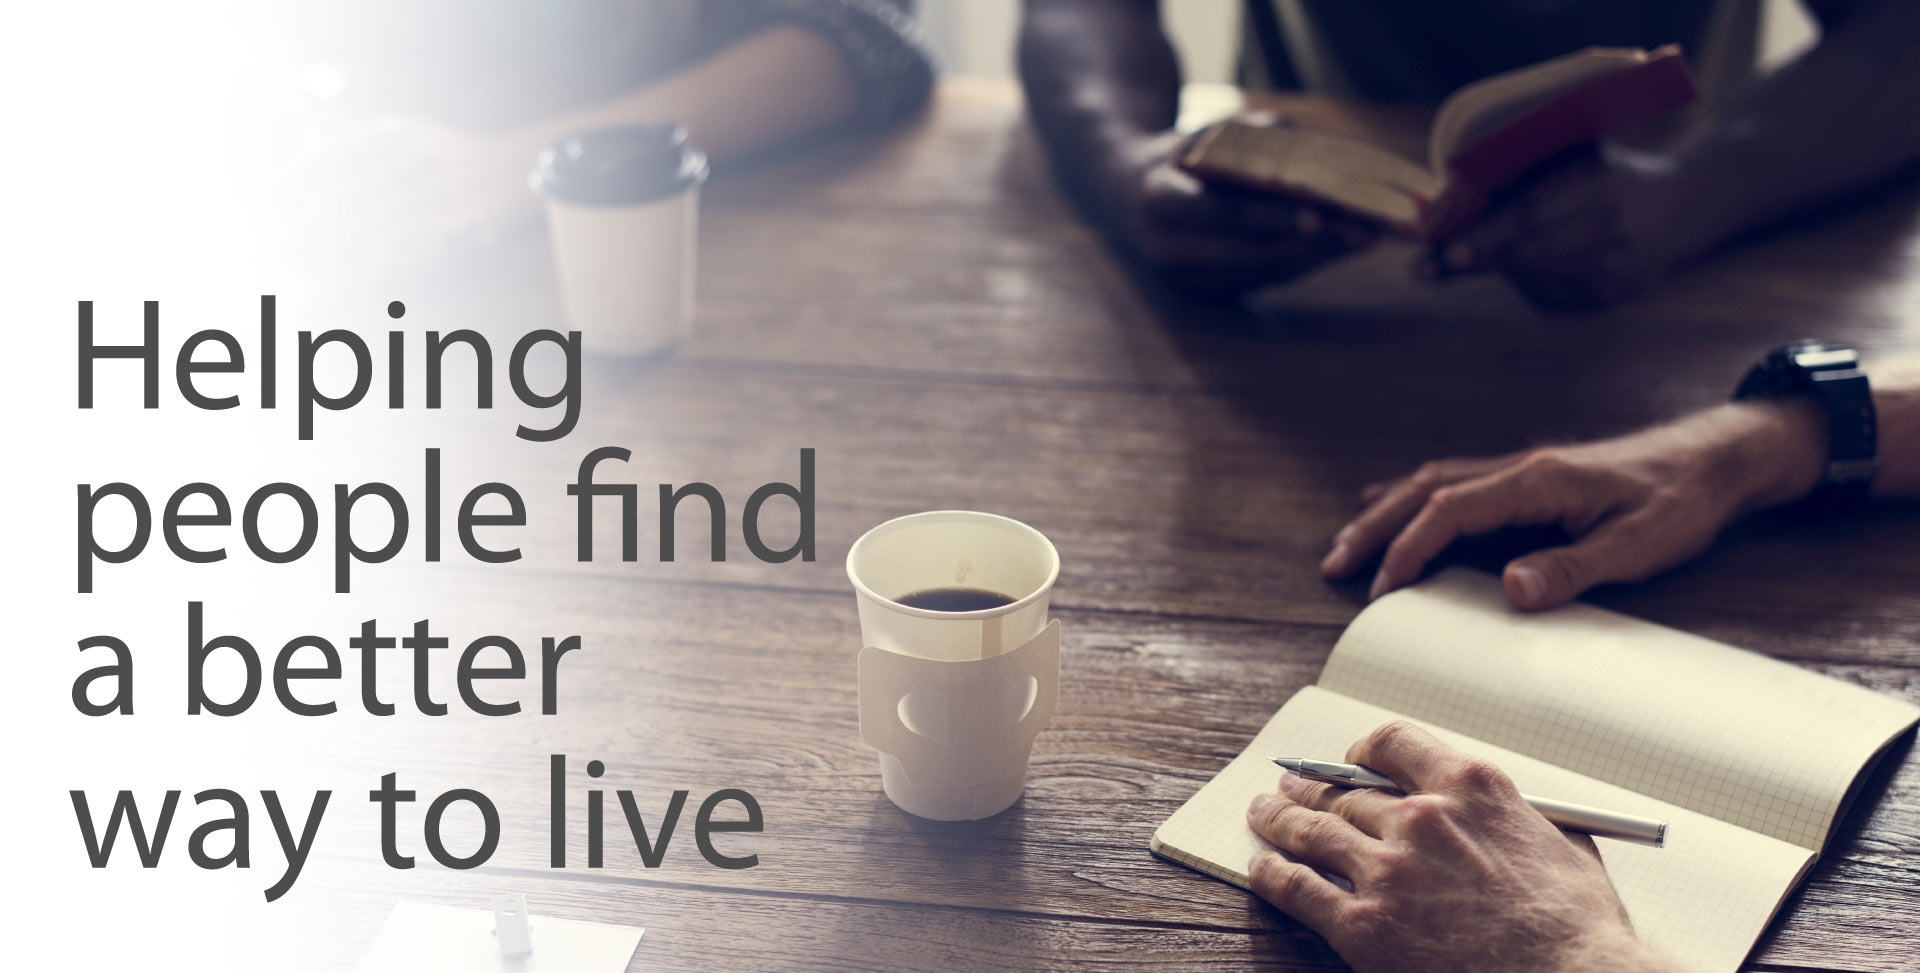 Helping people find a better way to live